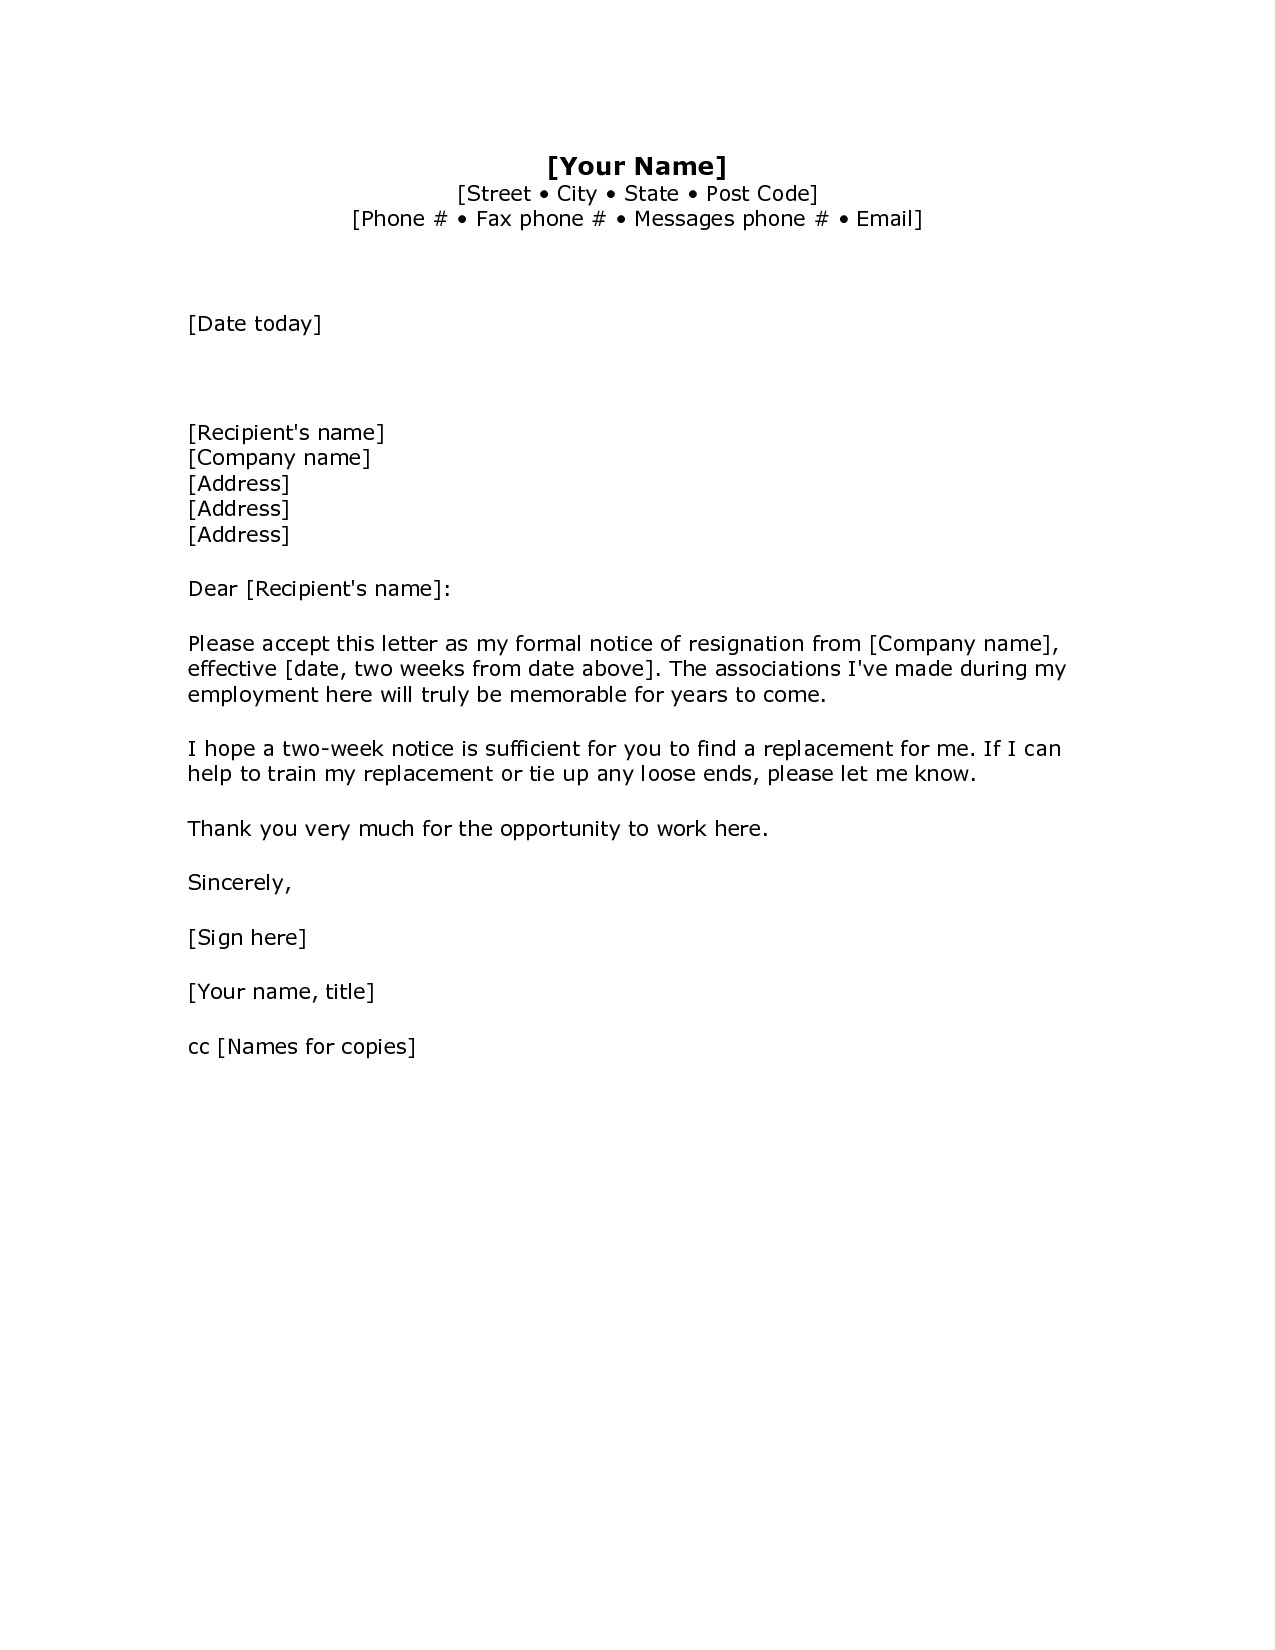 Maternity Return to Work Letter From Employer Template - Free Cover Letter 2018 Letter Template Informing Employer Of